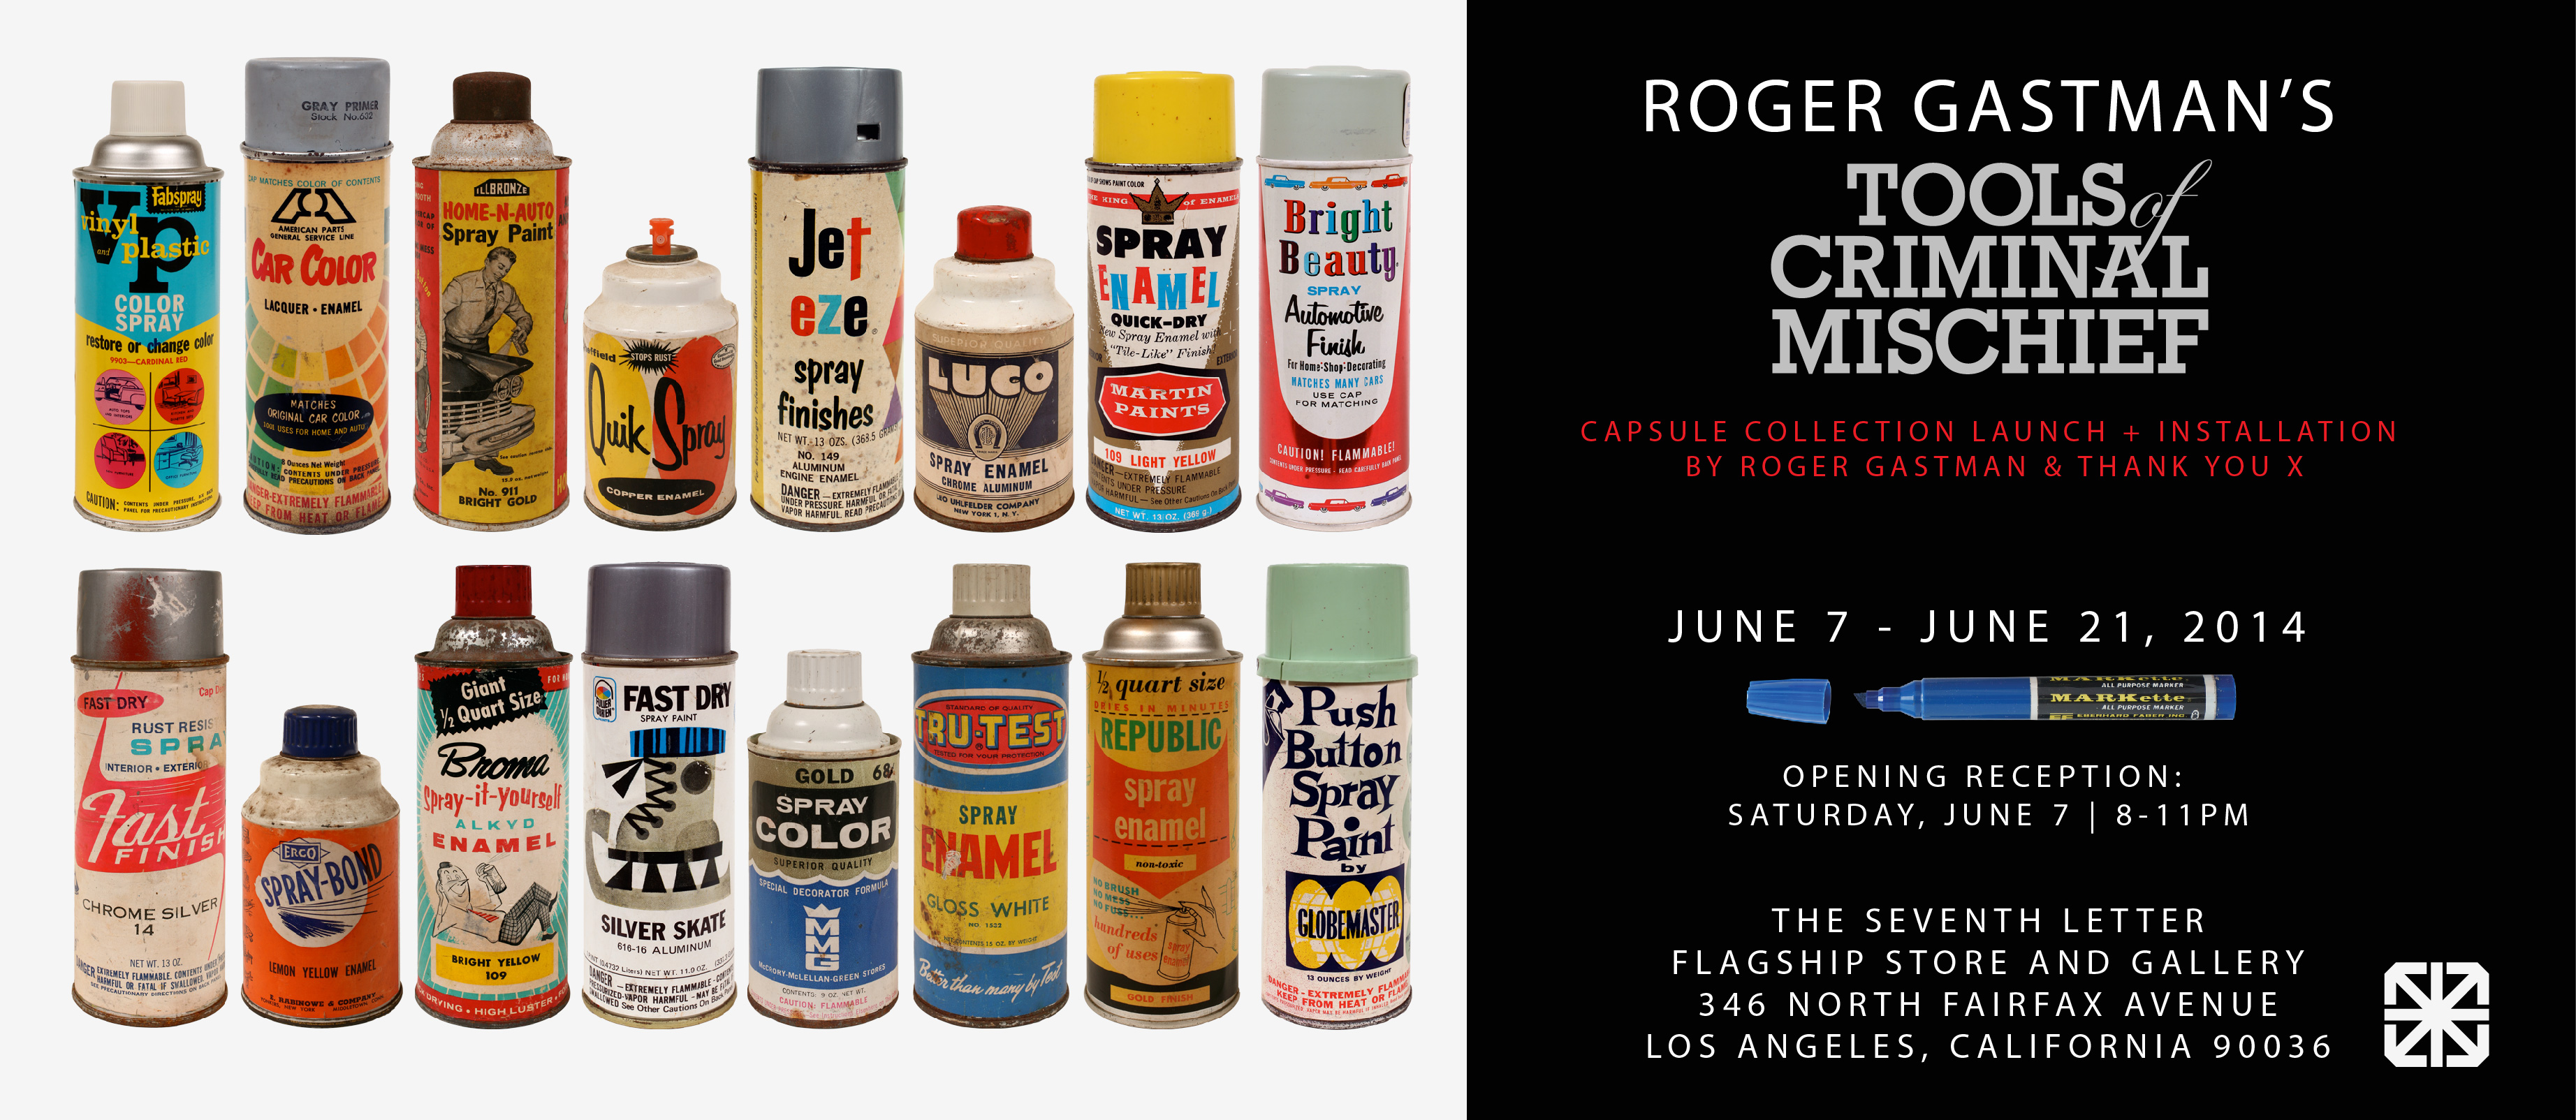 "Roger Gastman's ""Tools of Criminal Mischief"" @ The Seventh Letter: JuxtapozGastman006.jpg"